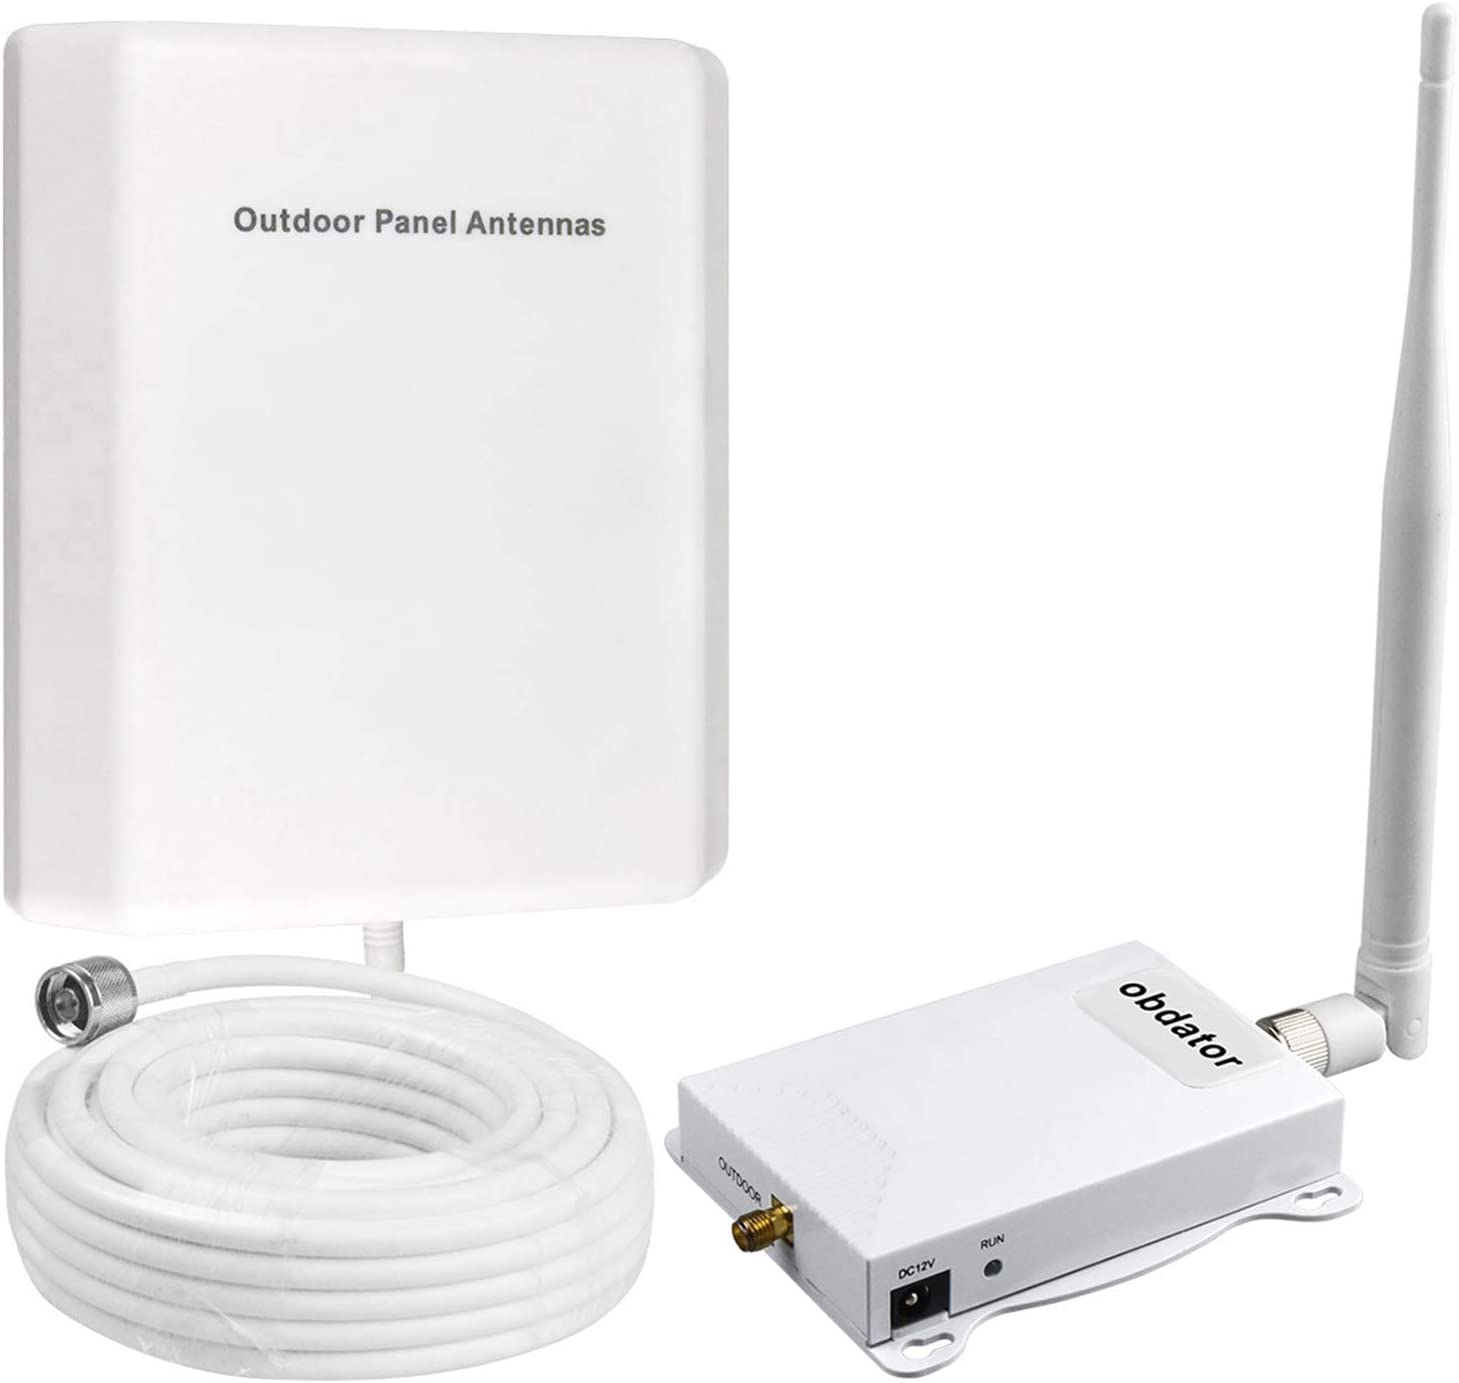 Cell Phone Signal Booster AT&T 4G LTE Cell Signal Booster FDD 700Mhz ATT T-Mobile Cell Phone Booster Band 12/17 High Gain 65dB Home Mobile Phone Signal Booster Repeater